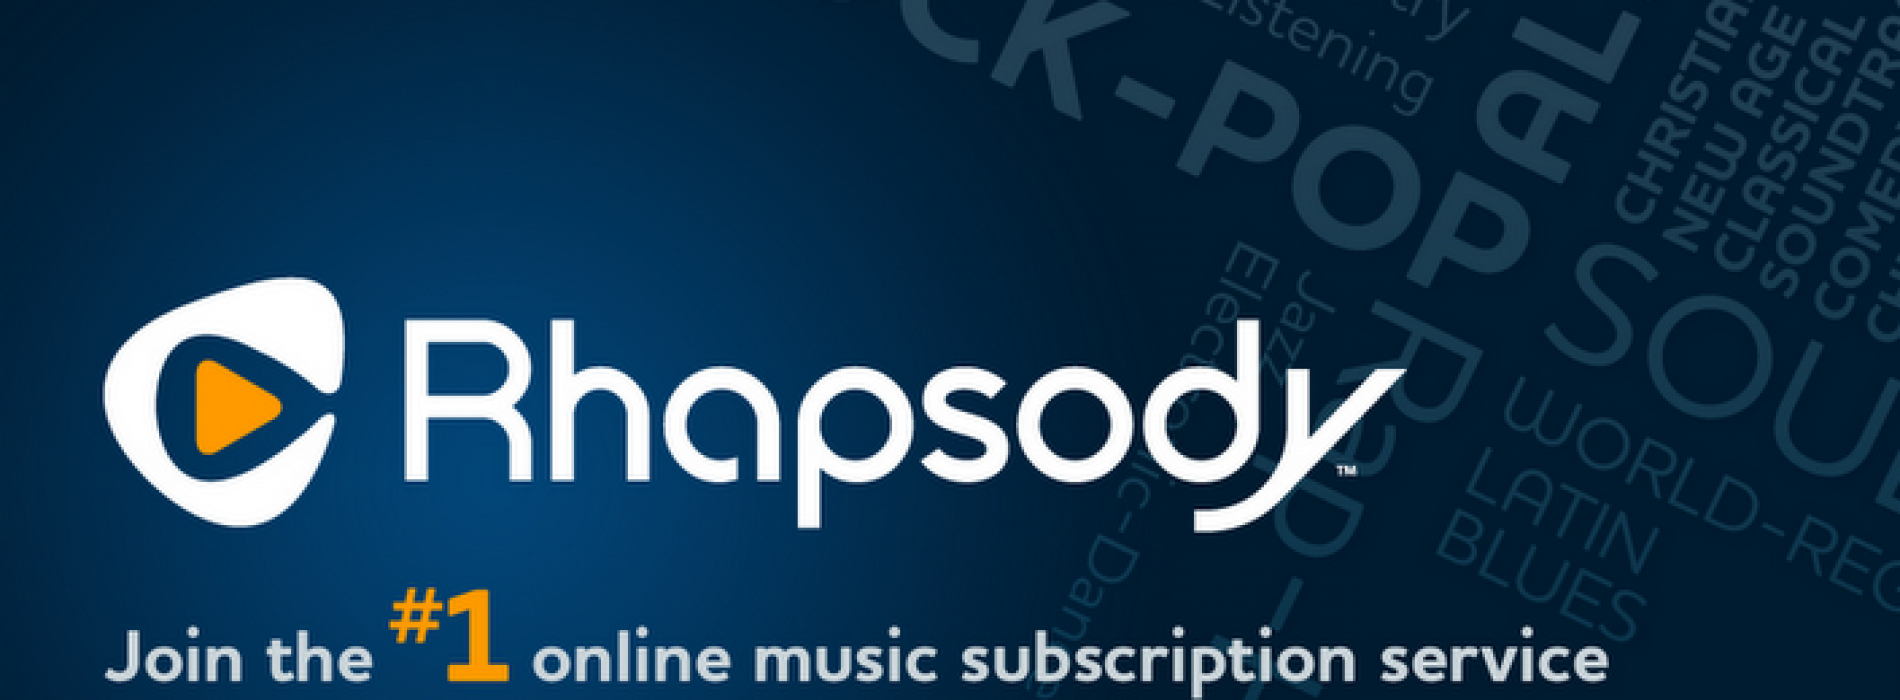 Rhapsody bows tablet-optimized version of music app